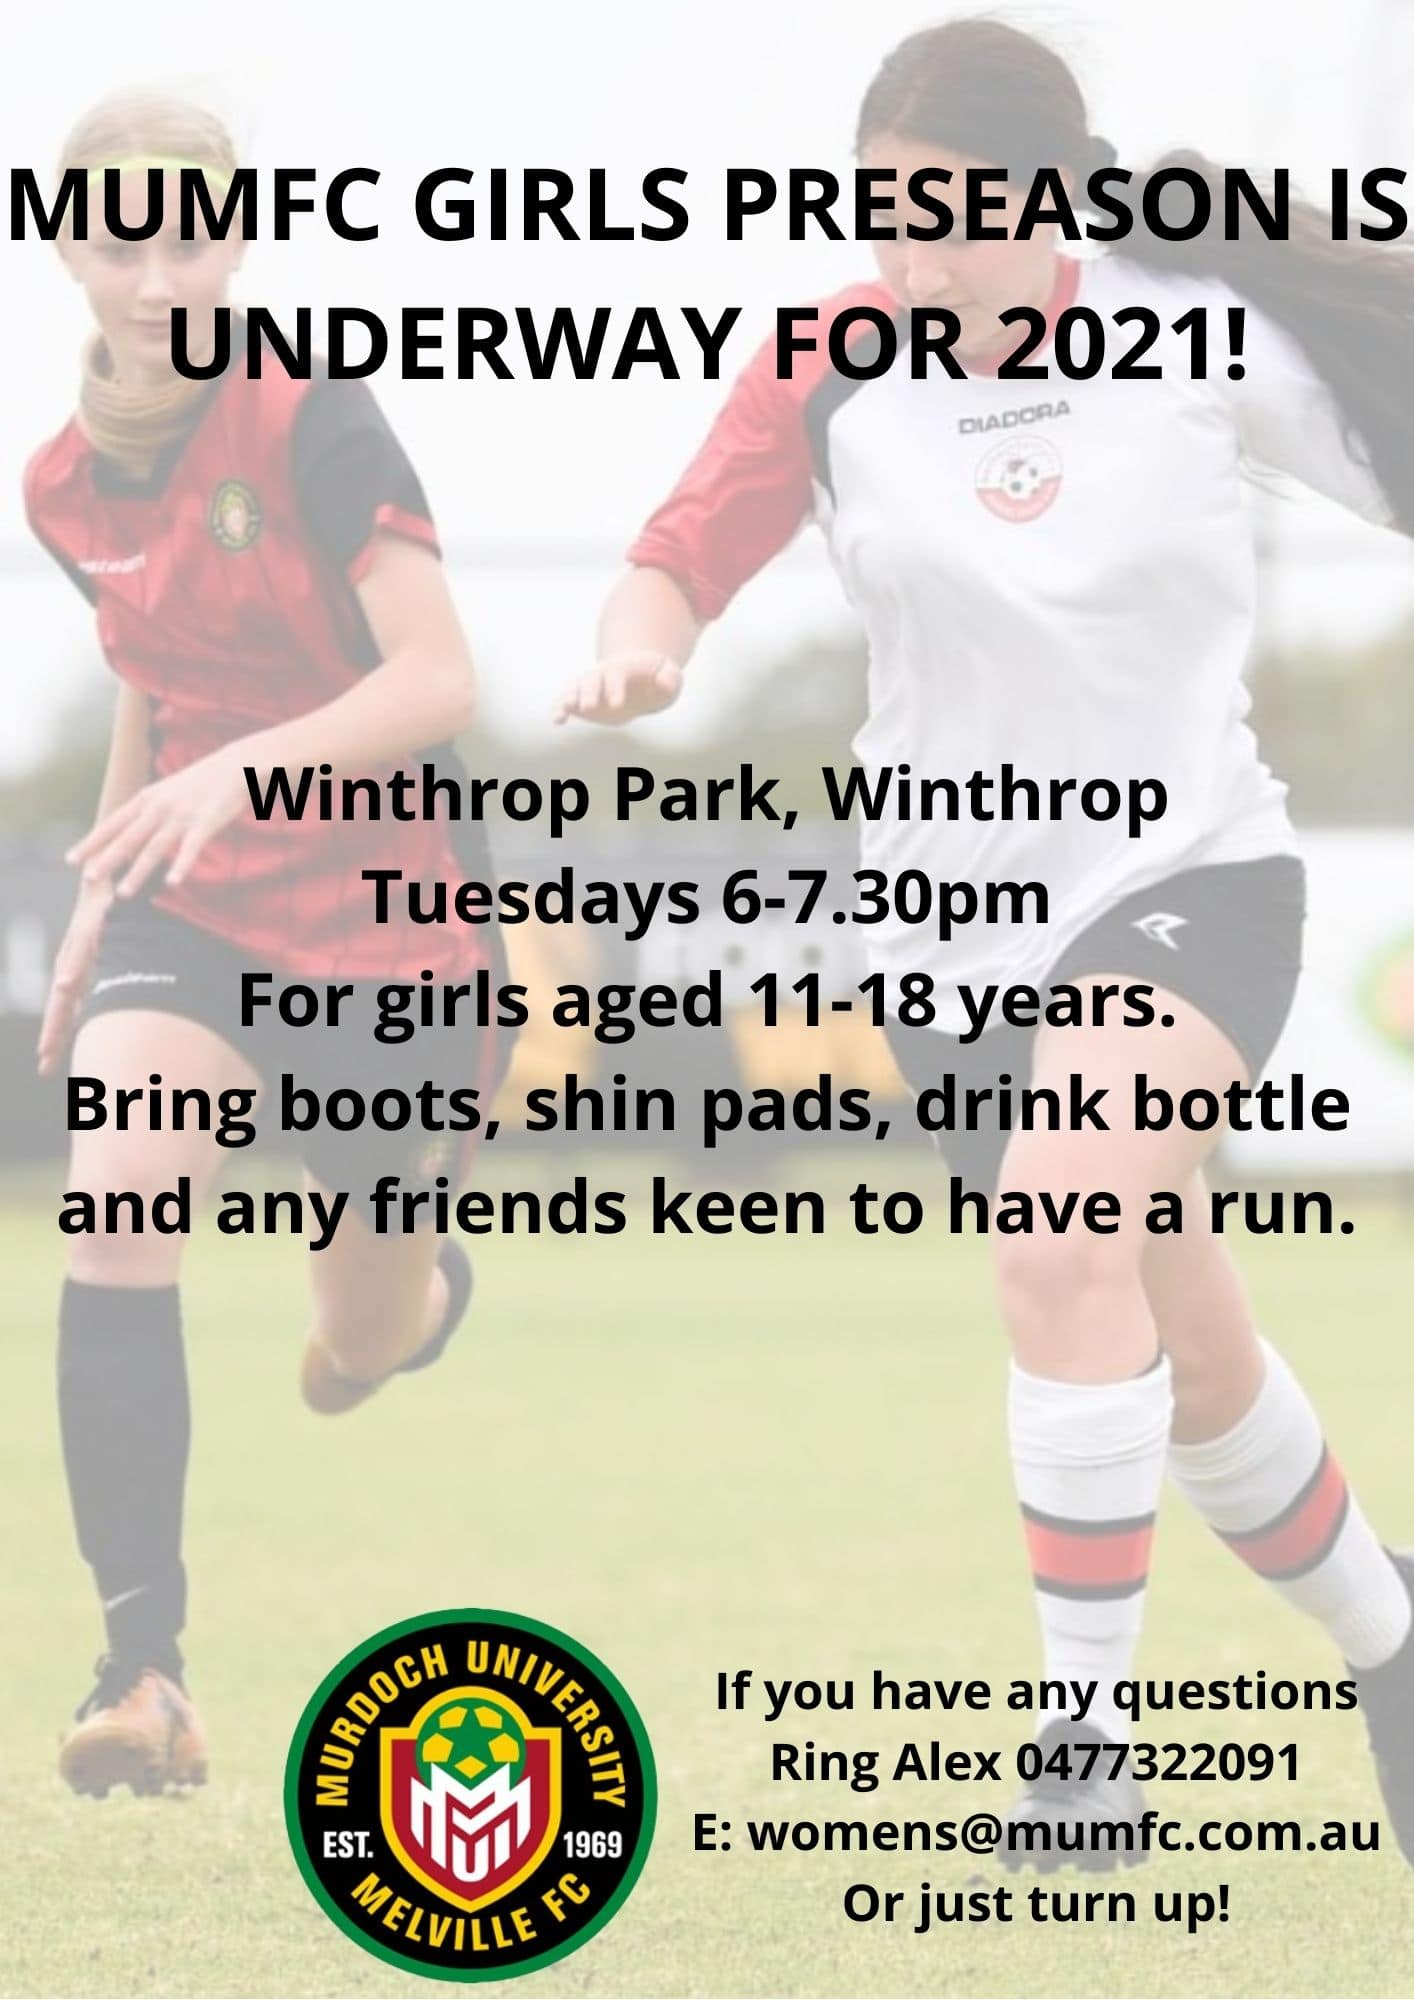 MUMFC Girls Preseason flier 2021